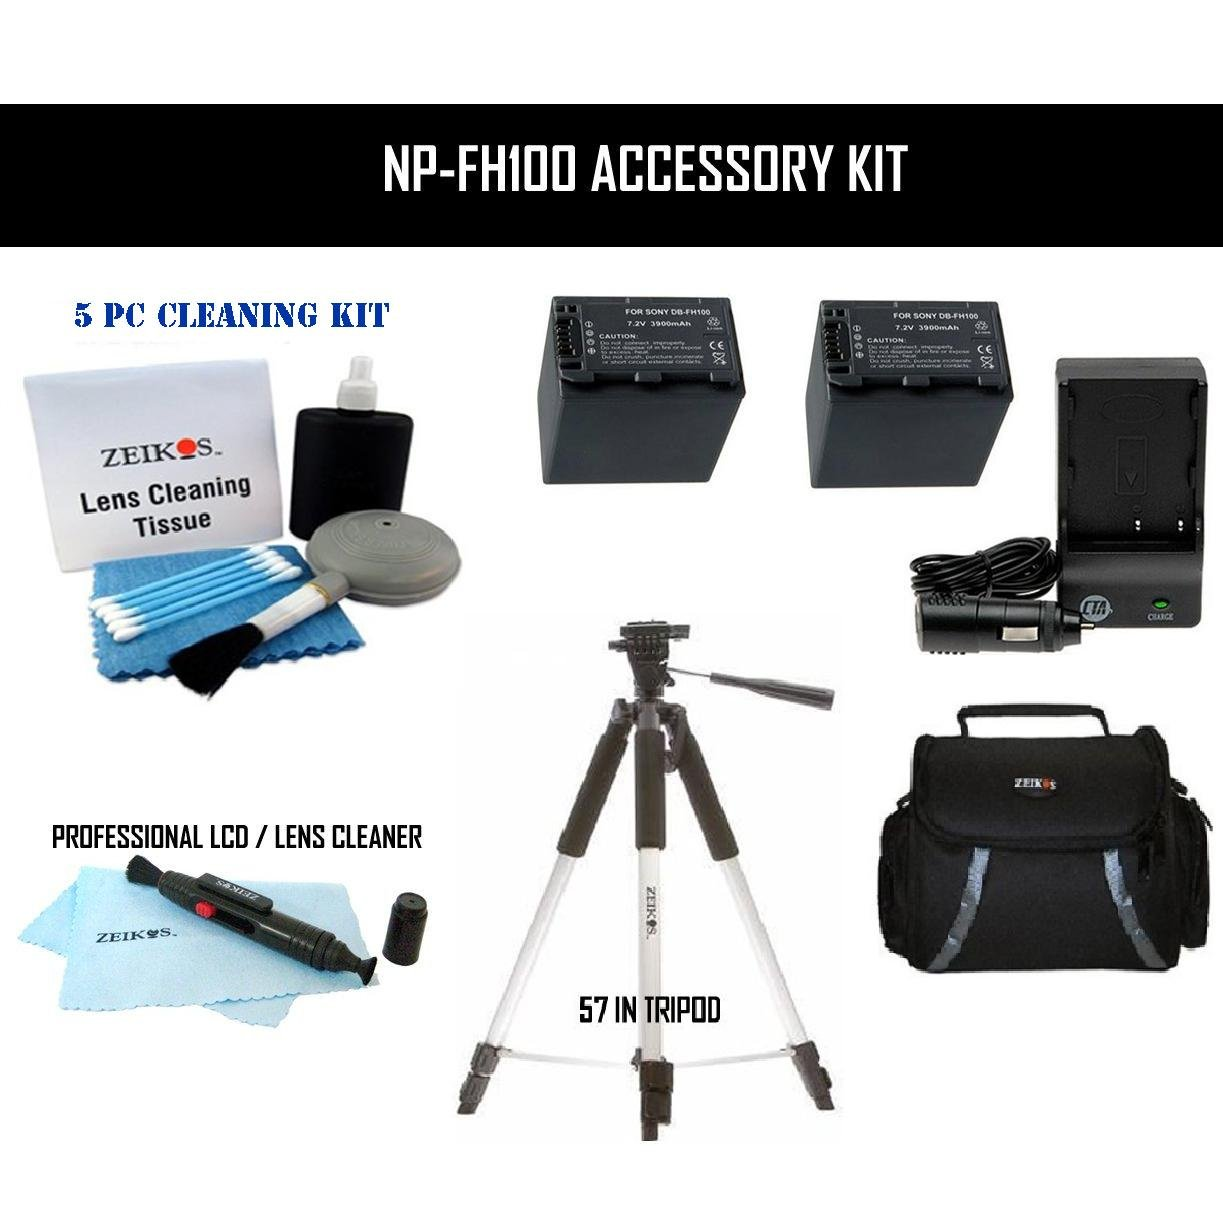 Advanced NP-FH100 Accessory Kit for Sony Camcorders/HandyCams DCR-DVD103, DCR-DVD105, DCR-DVD-108, DCR-DVD203, DCR-HC20, DCR-HC21 with Tripod, Rapid Charger, 2x Lithium-Ion Replacement Batteries, Cleaning Kit and Deluxe Carrying Case by ClearMax